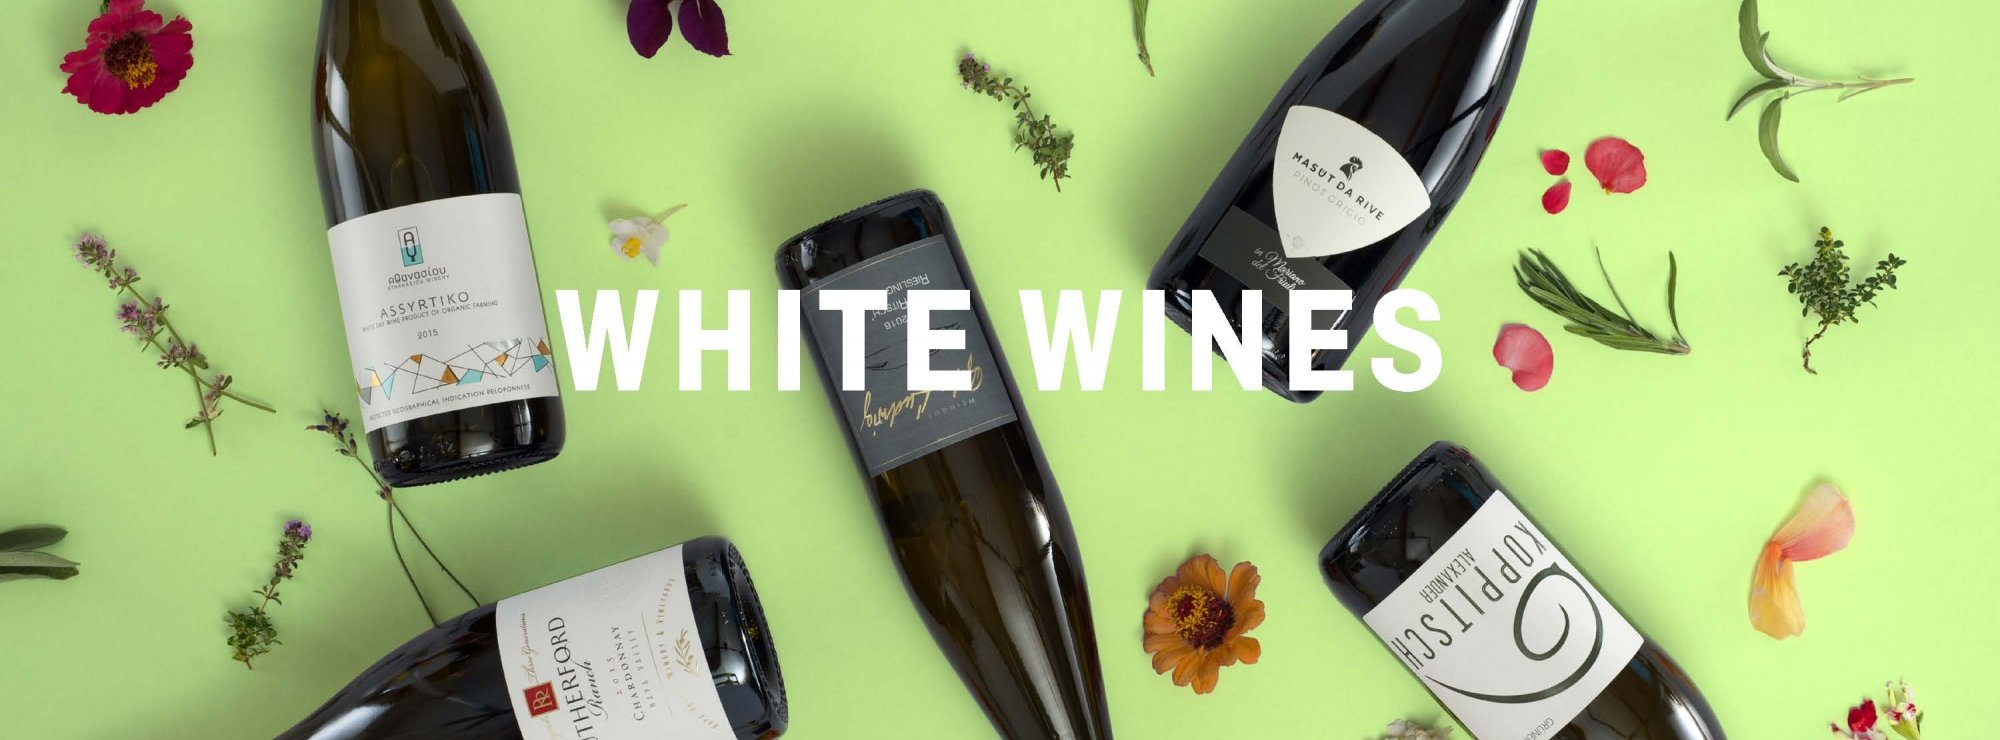 White Wines Banner